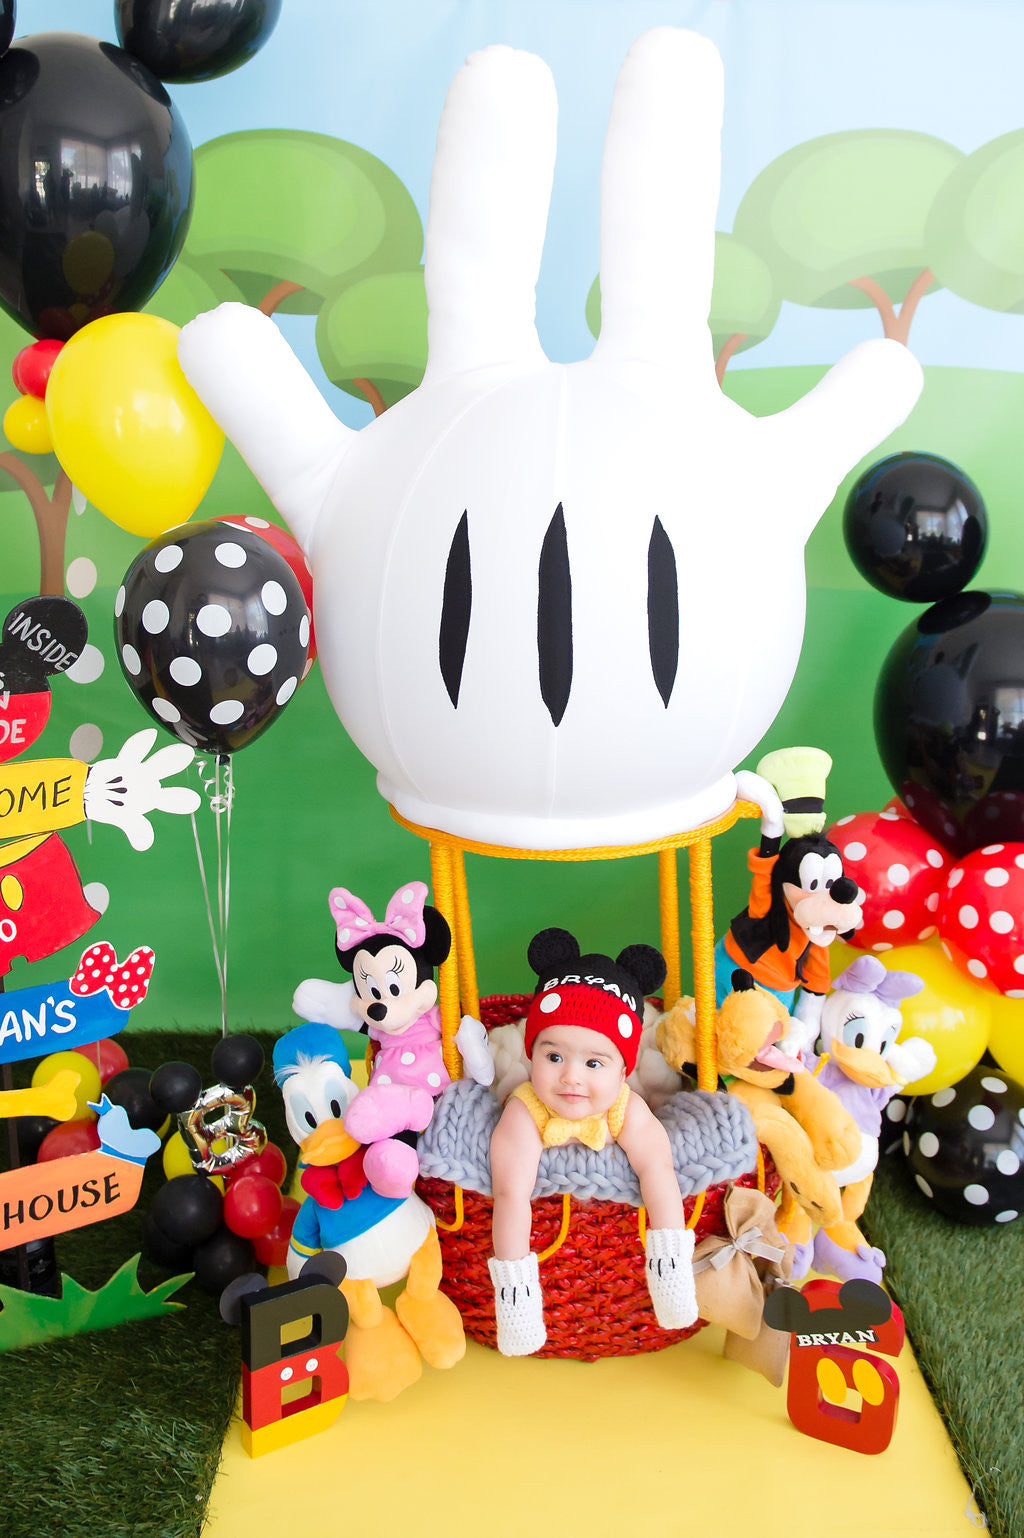 Bryan's Mickey Mouse Clubhouse 6 Month Birthday Party Cakes TheIcedSugarCookie.com Divine Delicacies Cakes, Balloons By Luz Paz, Christy And Co Photography, Bryan Jose Candeau